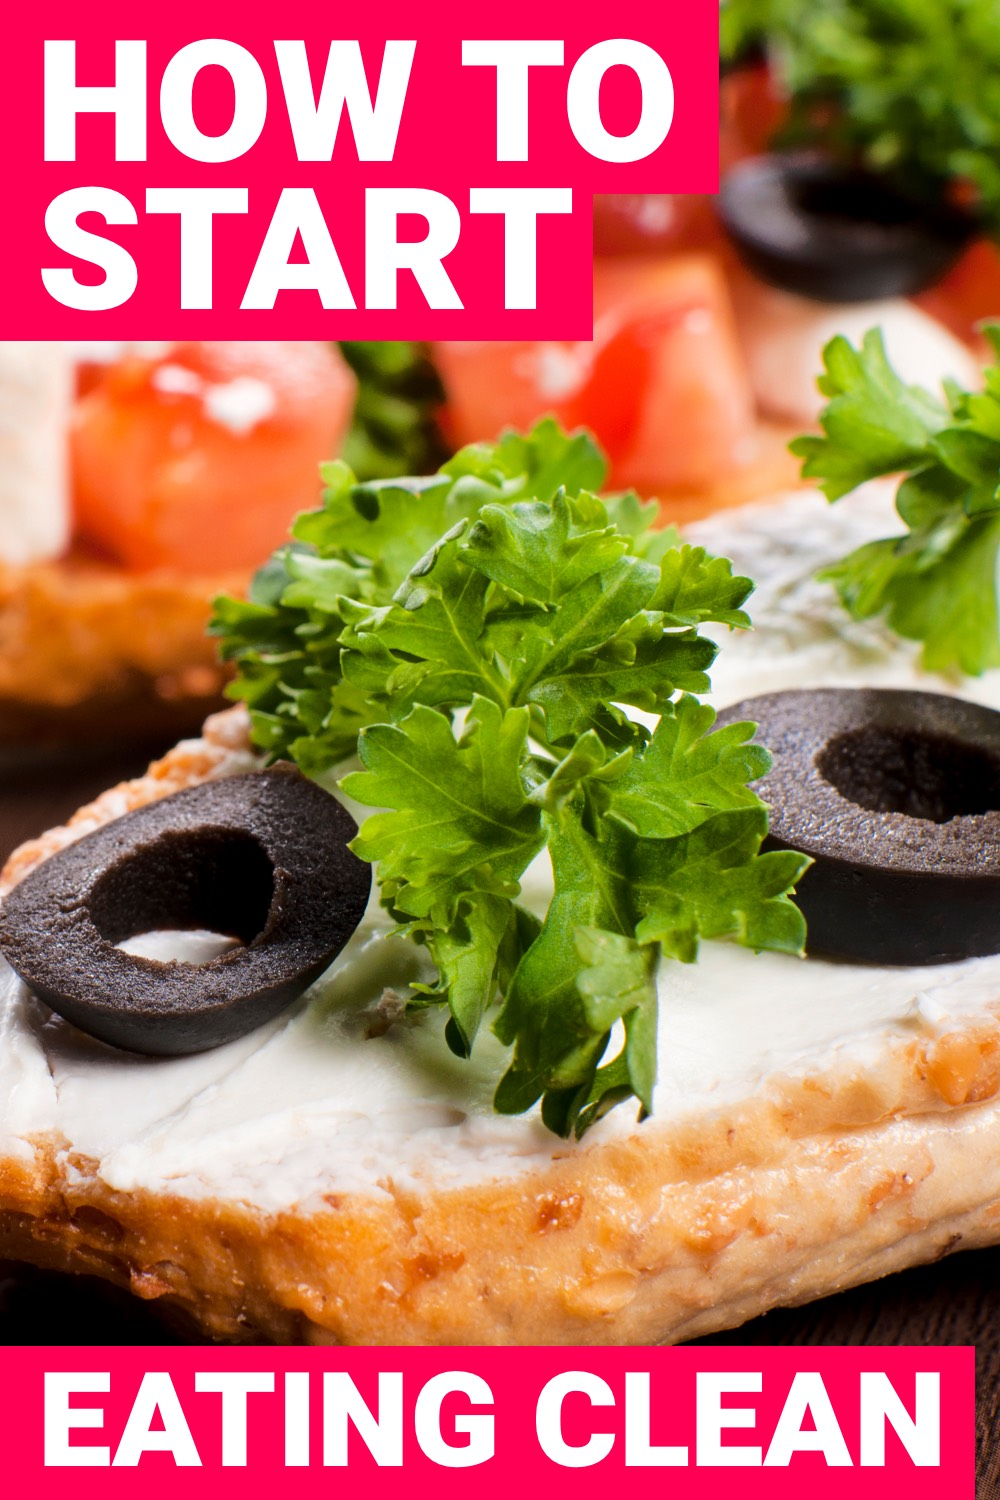 Clean eating for beginners isn't always the easiest thing especially if you aren't prepared. Here is how to stop the start/stop cycle of clean eating.